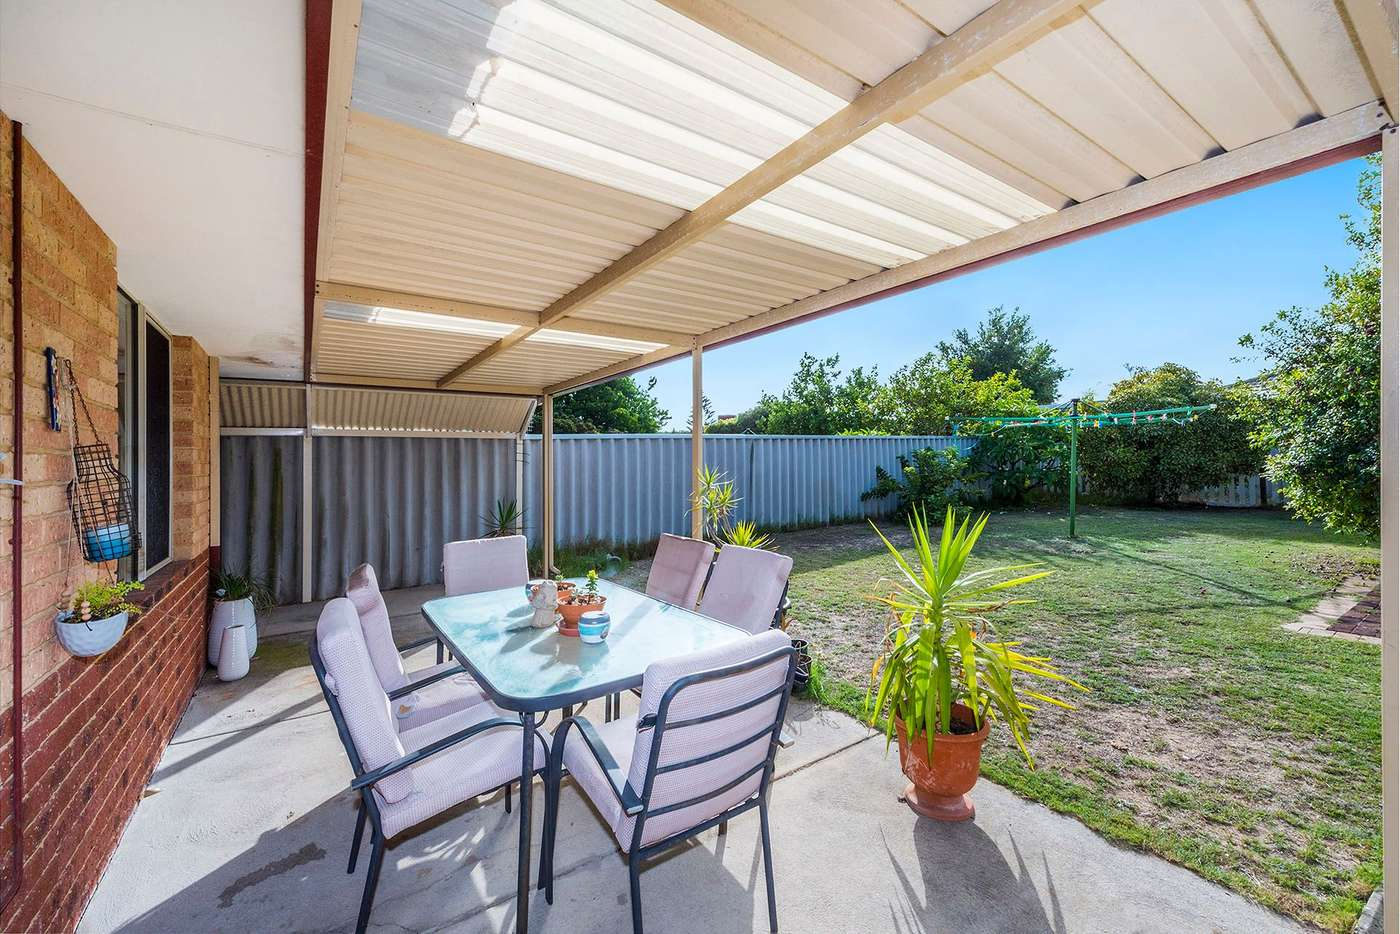 Seventh view of Homely house listing, 31 Fairview Drive, Waikiki WA 6169